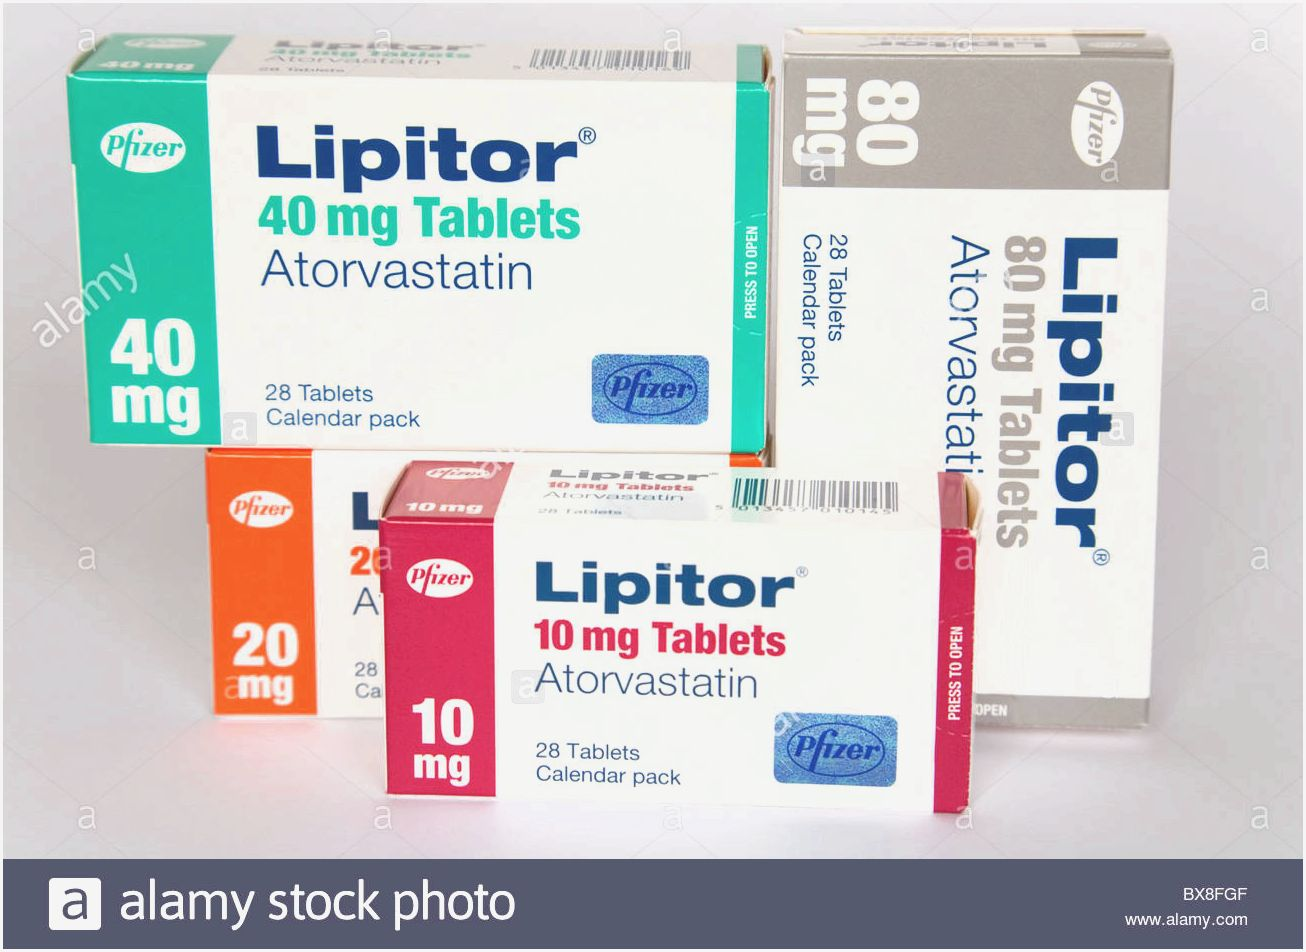 Buy lipitor online from canada drugs - online canadian pharmacy Lipitor could be